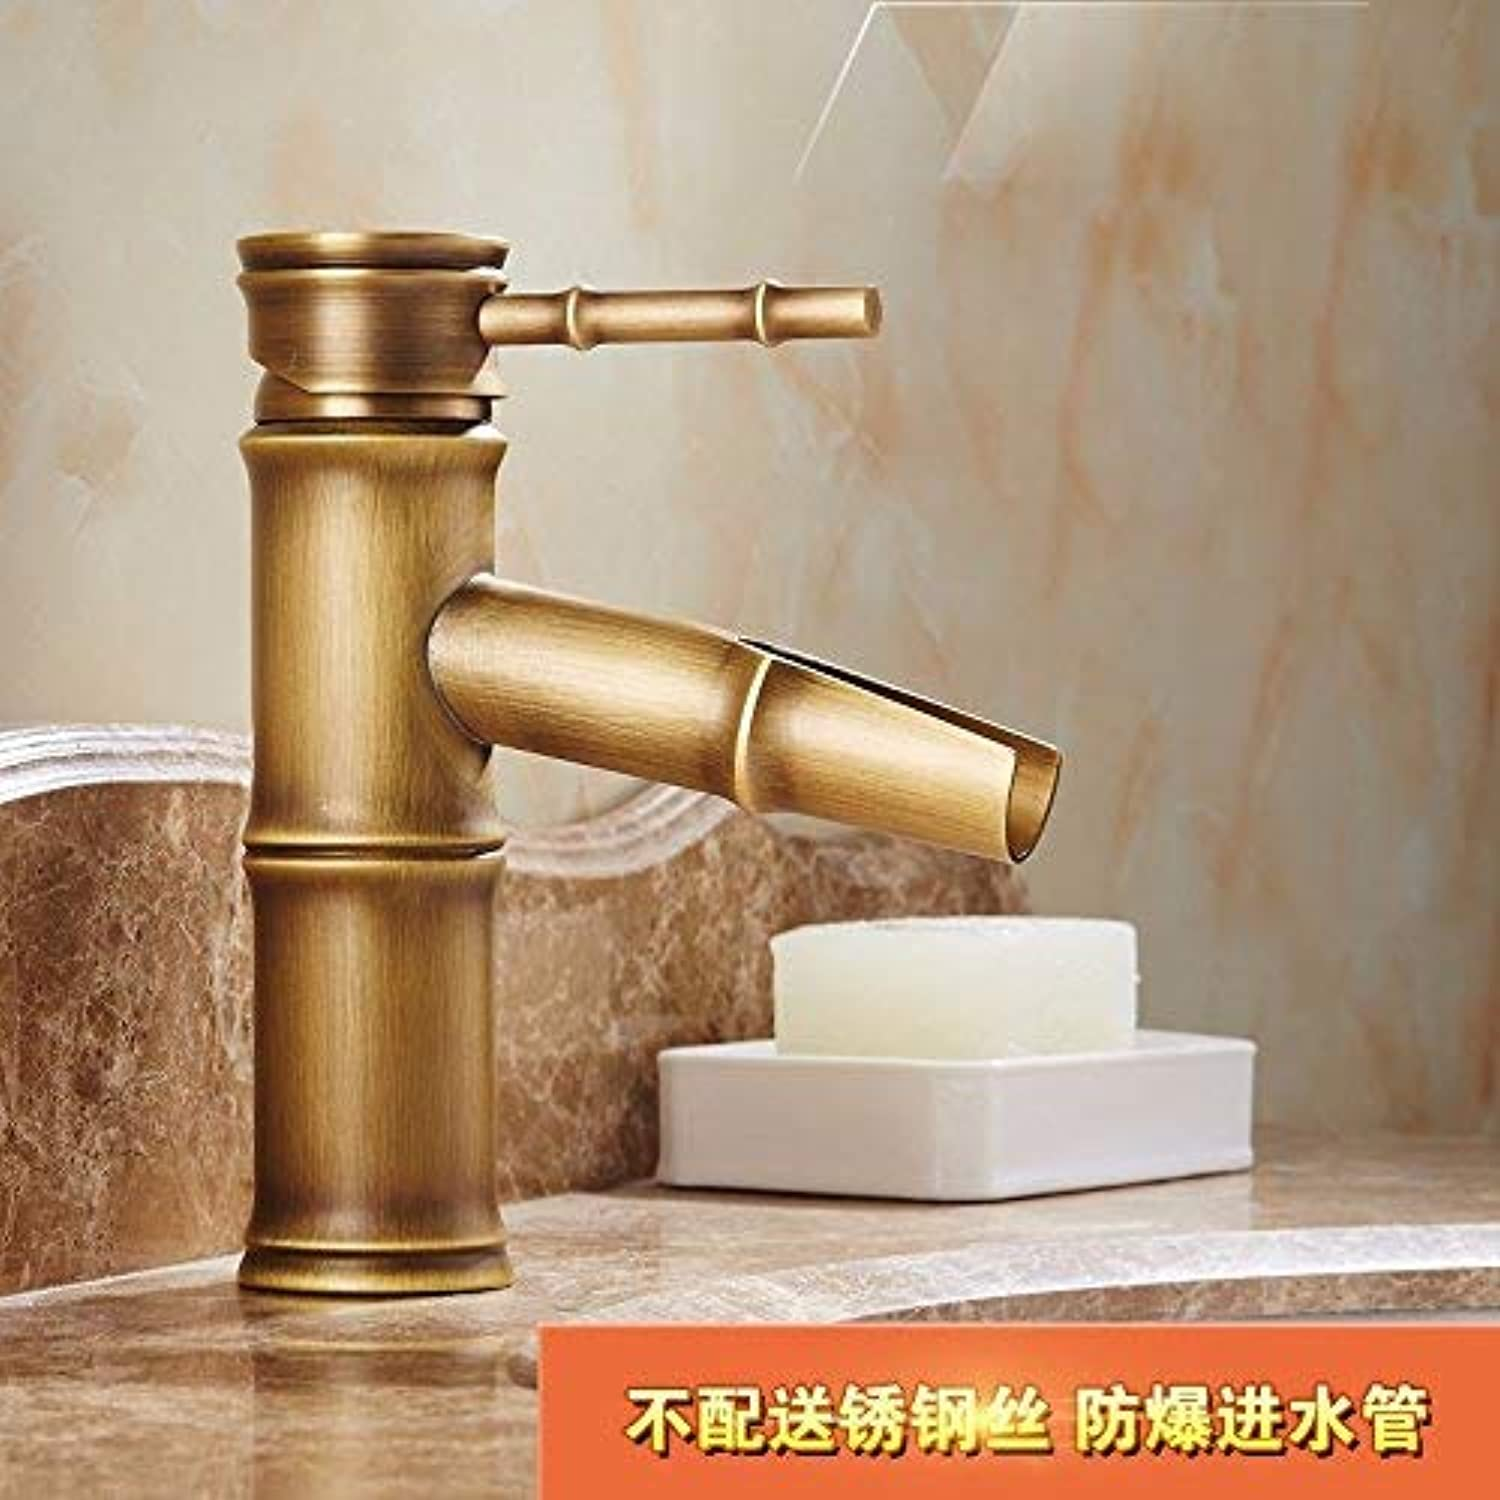 Oudan Basin Mixer Tap Bathroom Sink Faucet Flagship Store antique faucet full copper European country retro hot and cold single hole basin washbasin bamboo Faucet